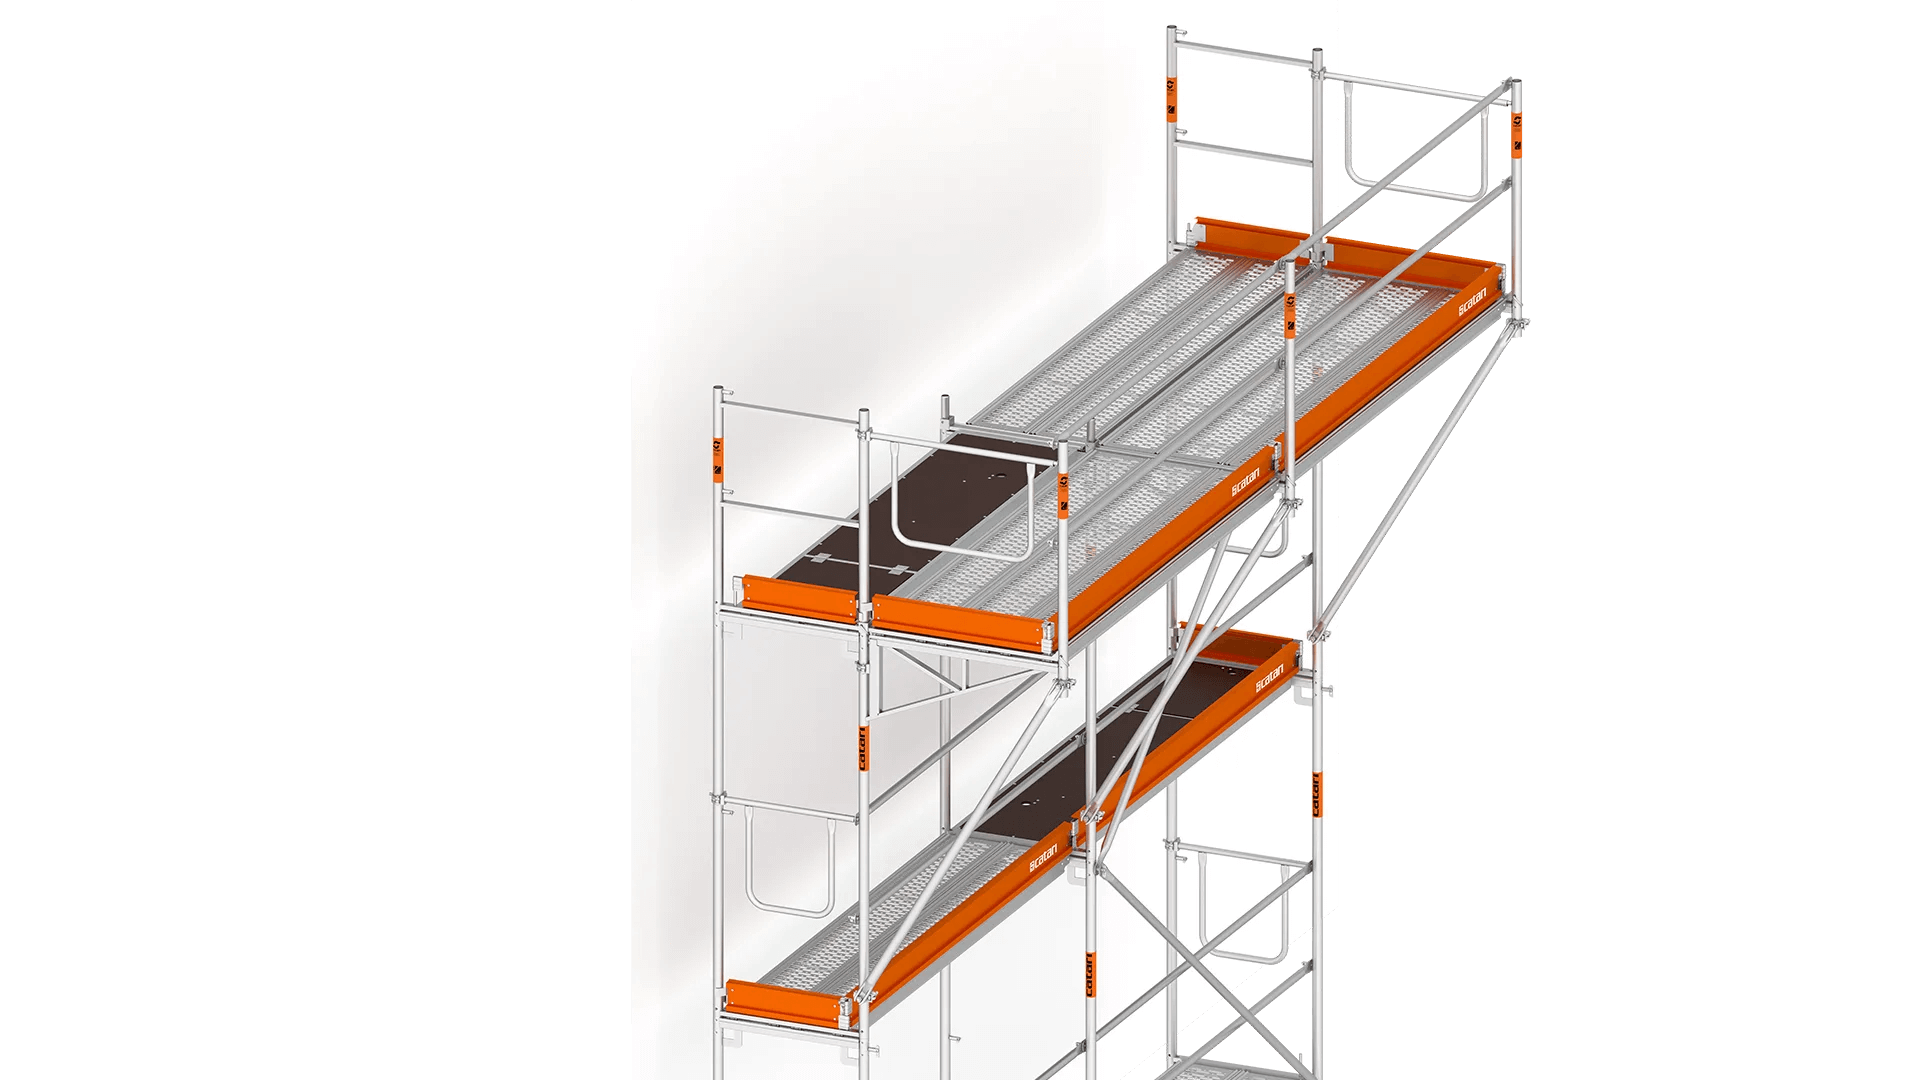 catari fa-48 console brackets for scaffolding